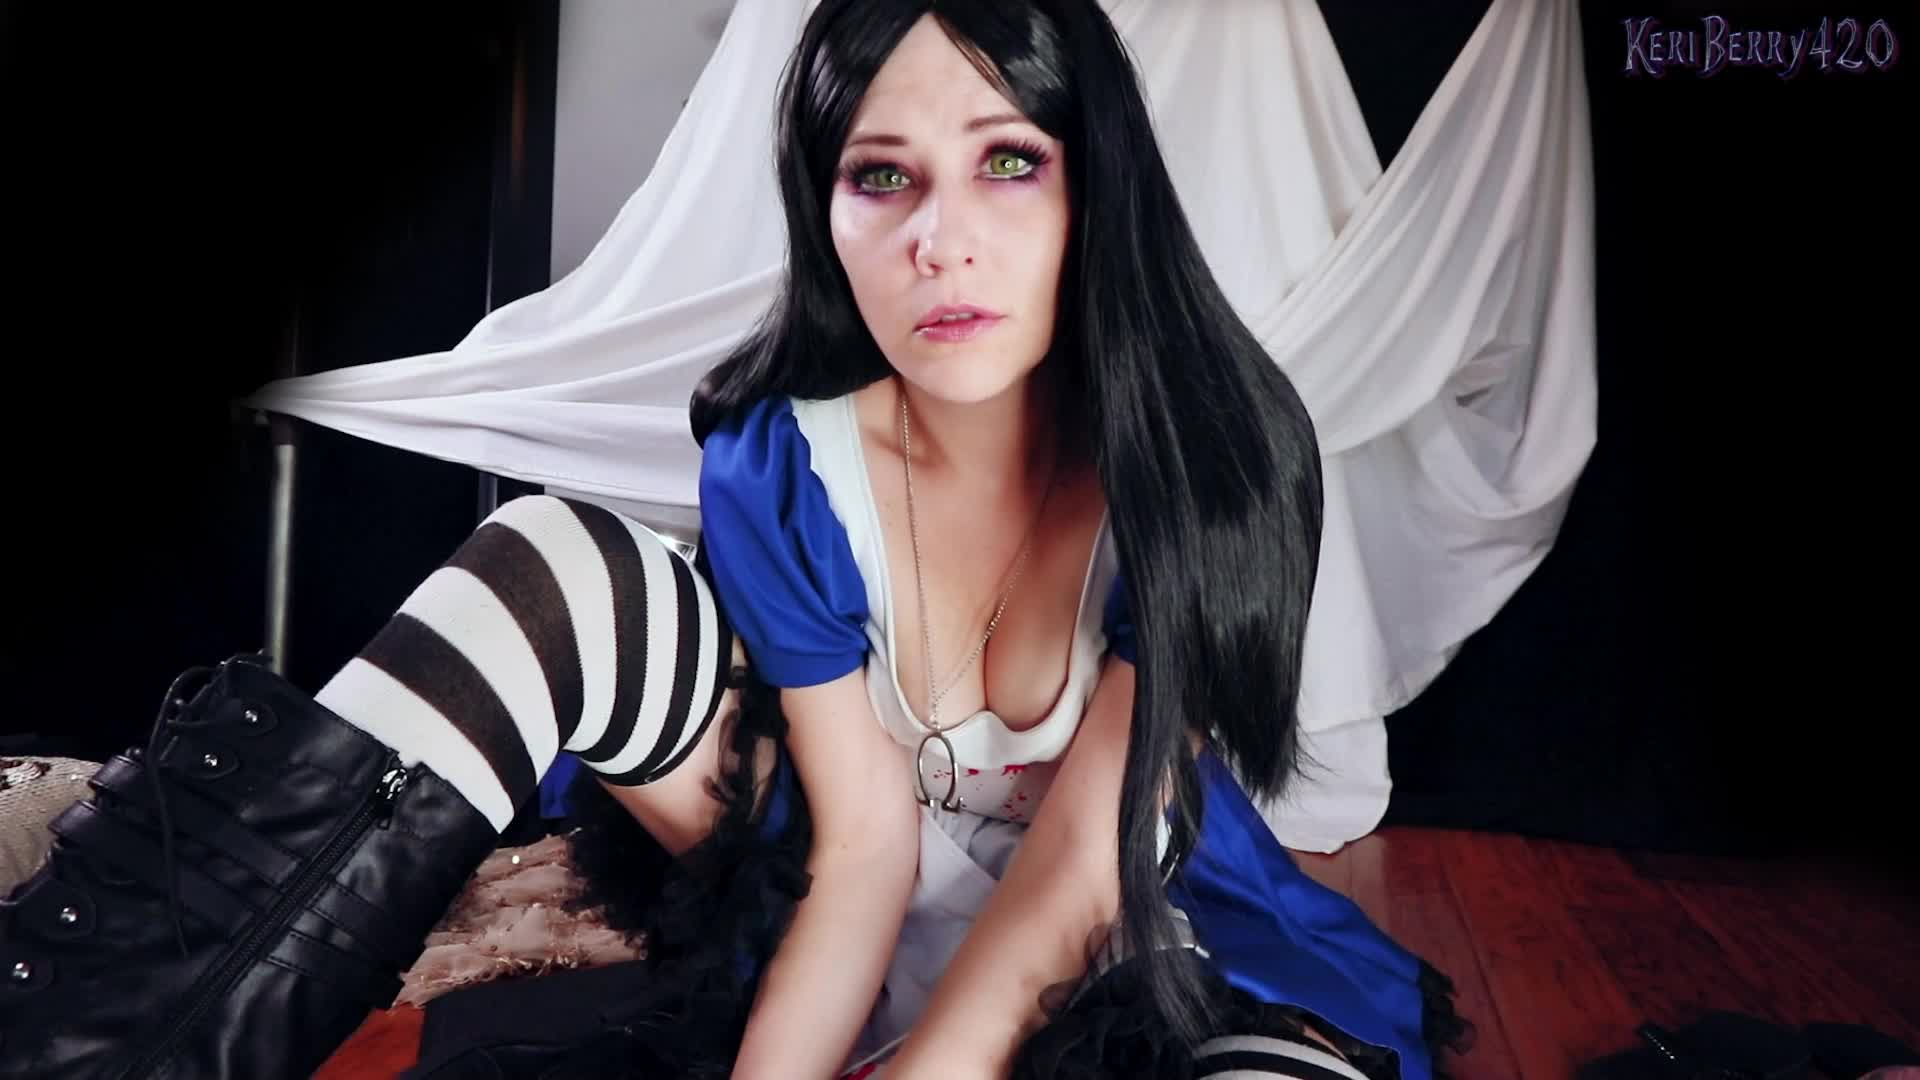 Alice's Anal Madness Under the Sea by Keri Berry